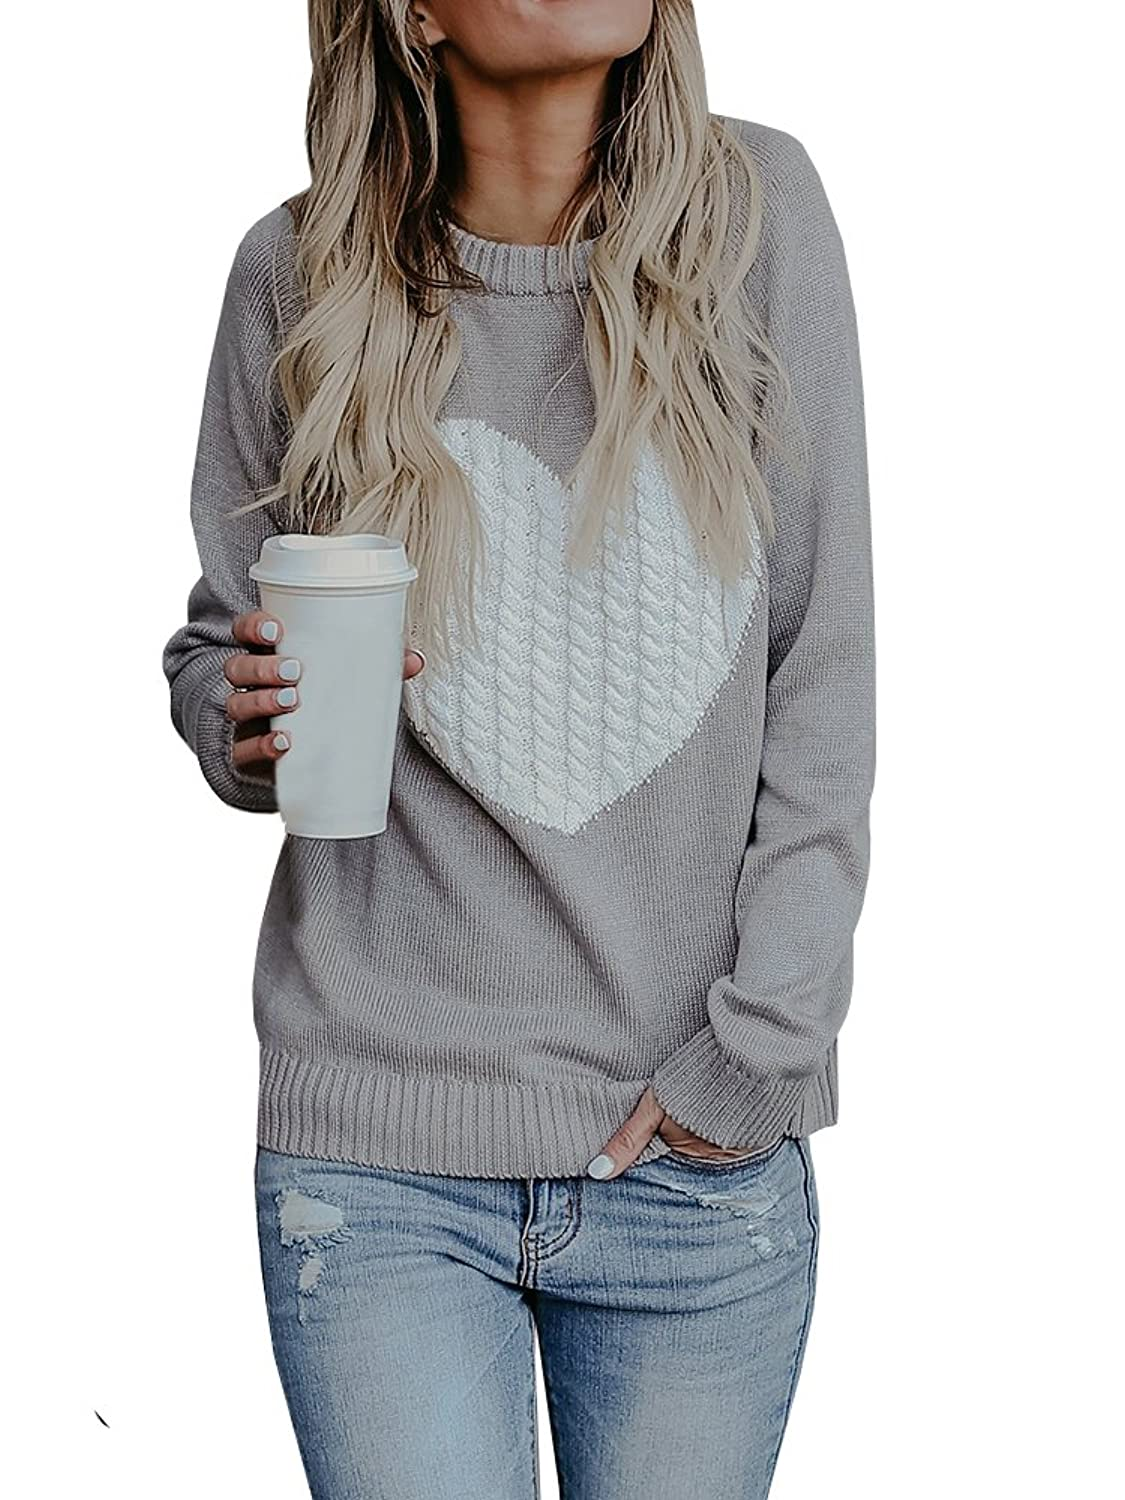 Ermonn Women Heart Printed Knit Sweater Crew Neck Long Sleeve Casual Pullover Jumpers for Valentine's Day